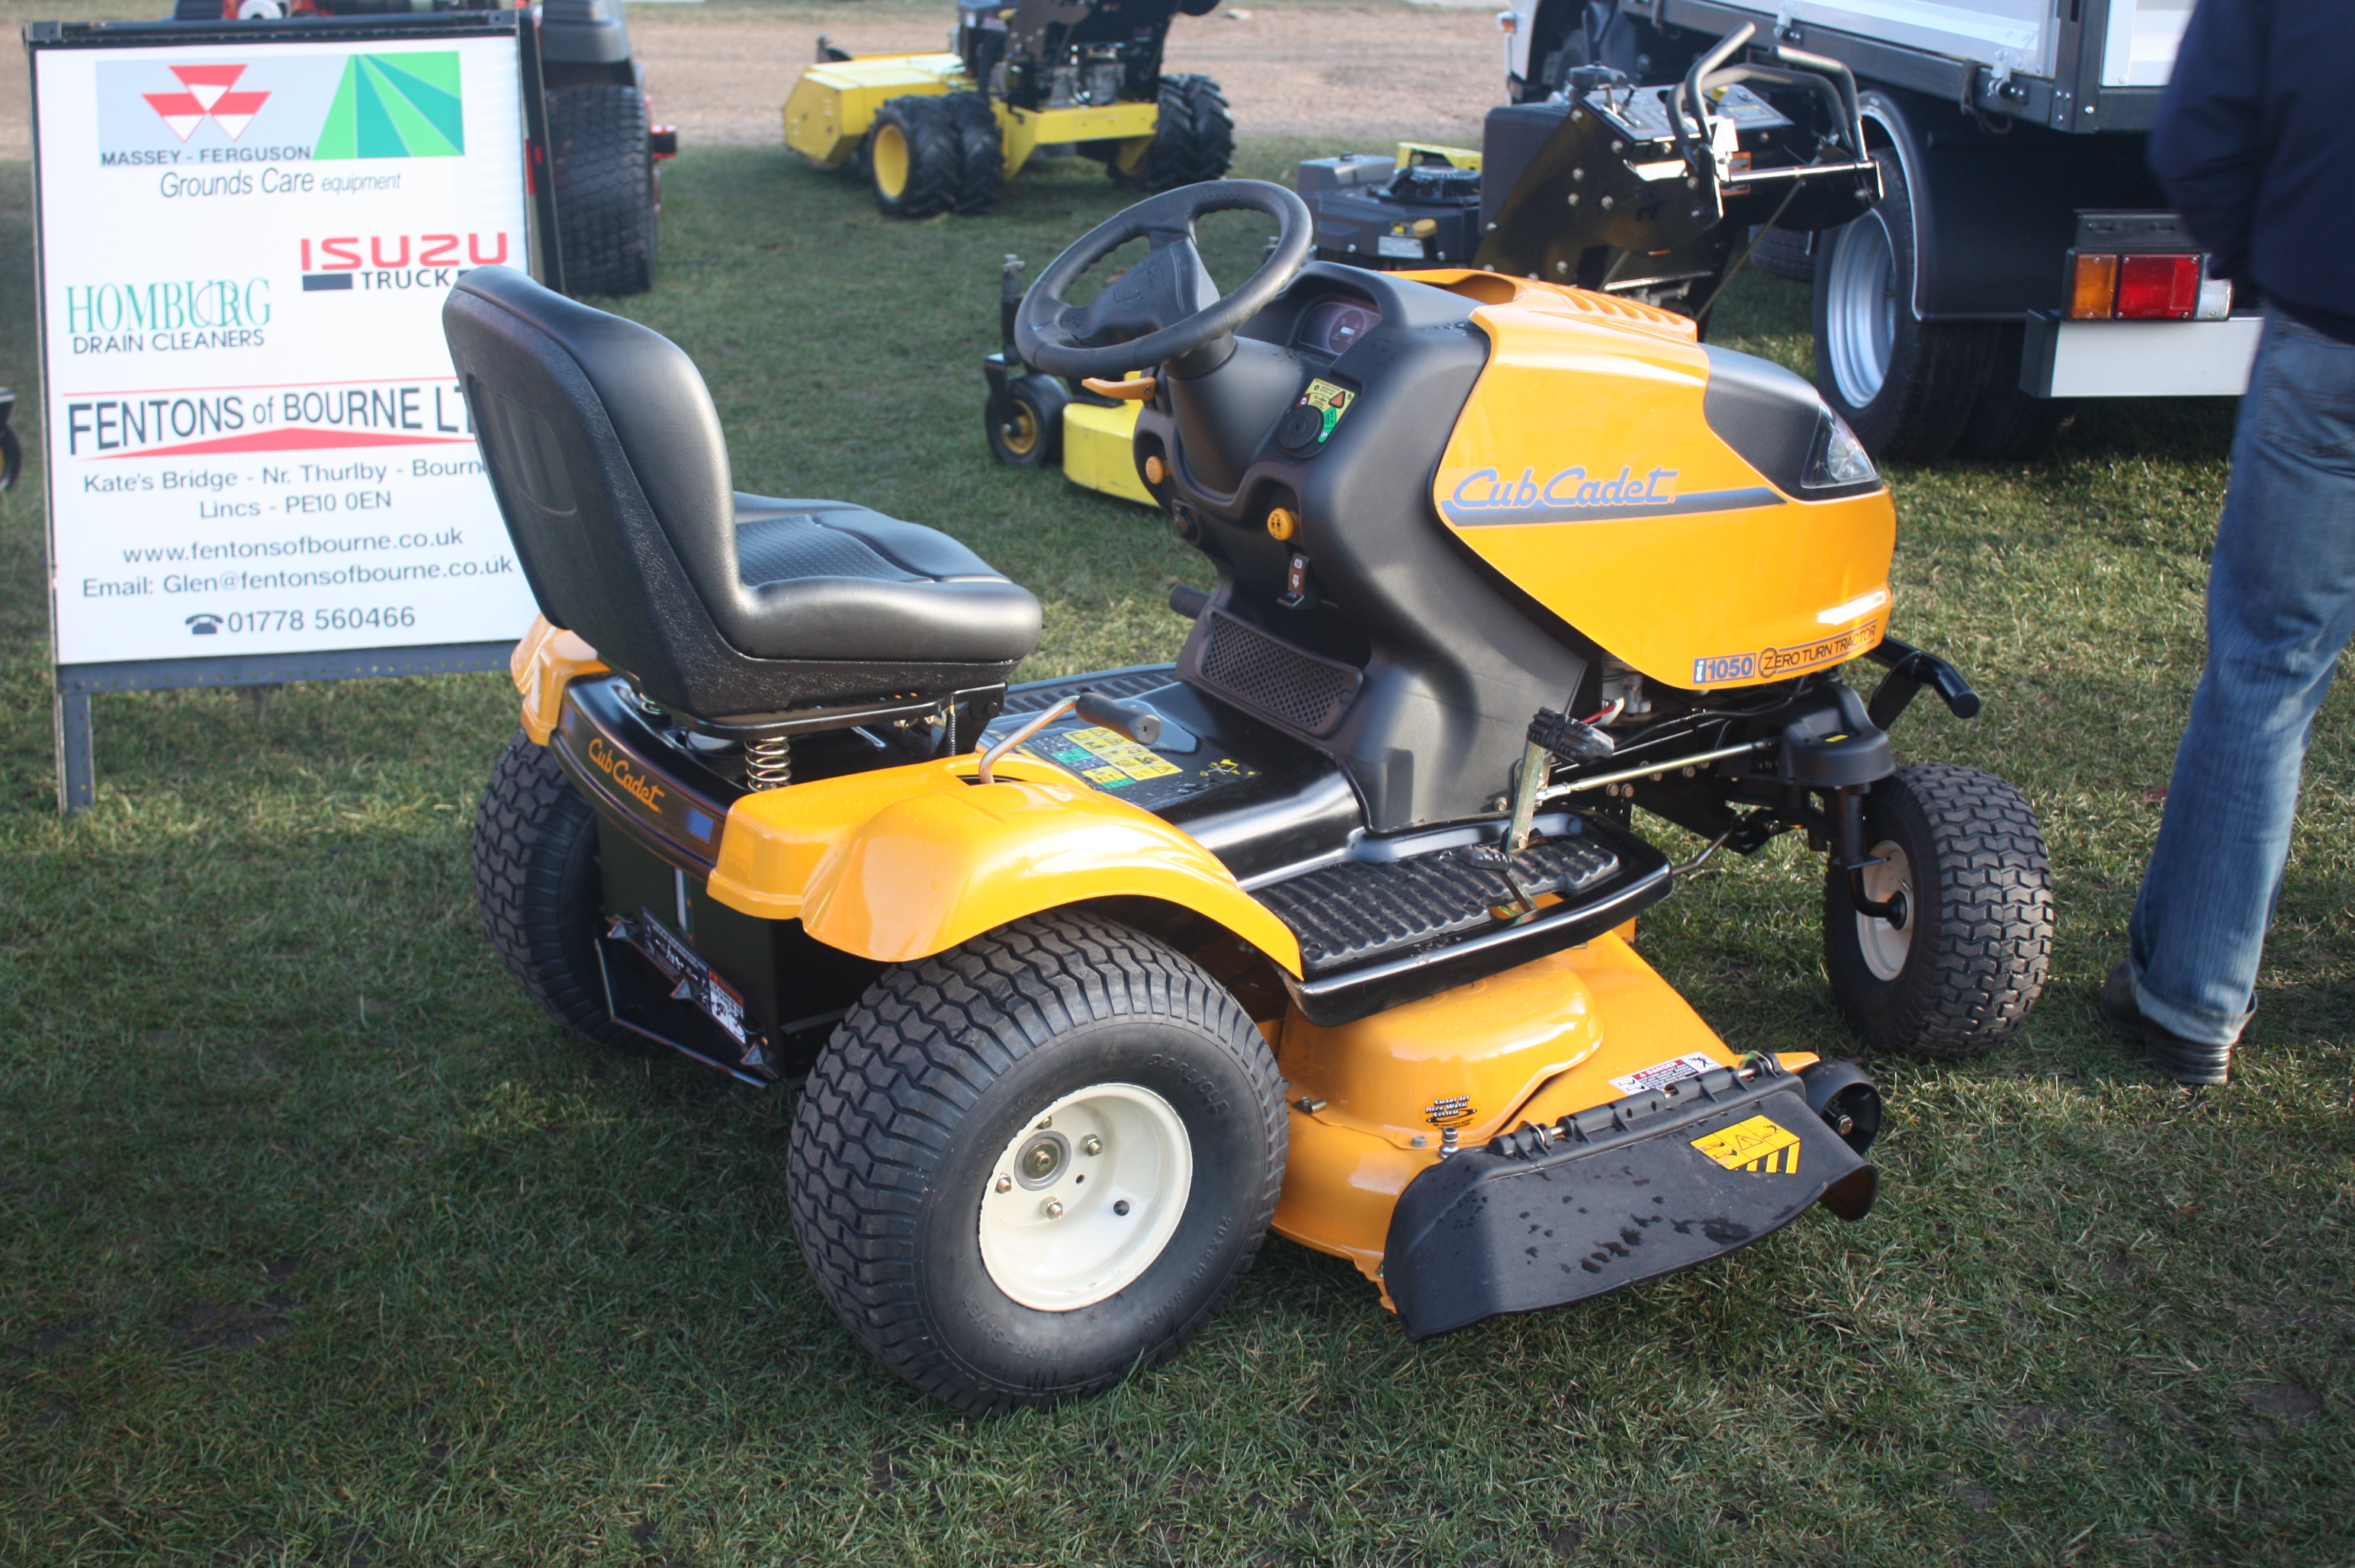 Cub Cadet 1515 Wiring Diagram Free Download Diagrams 1500 680 Tractor Construction Plant Wiki Fandom Powered By 49 At